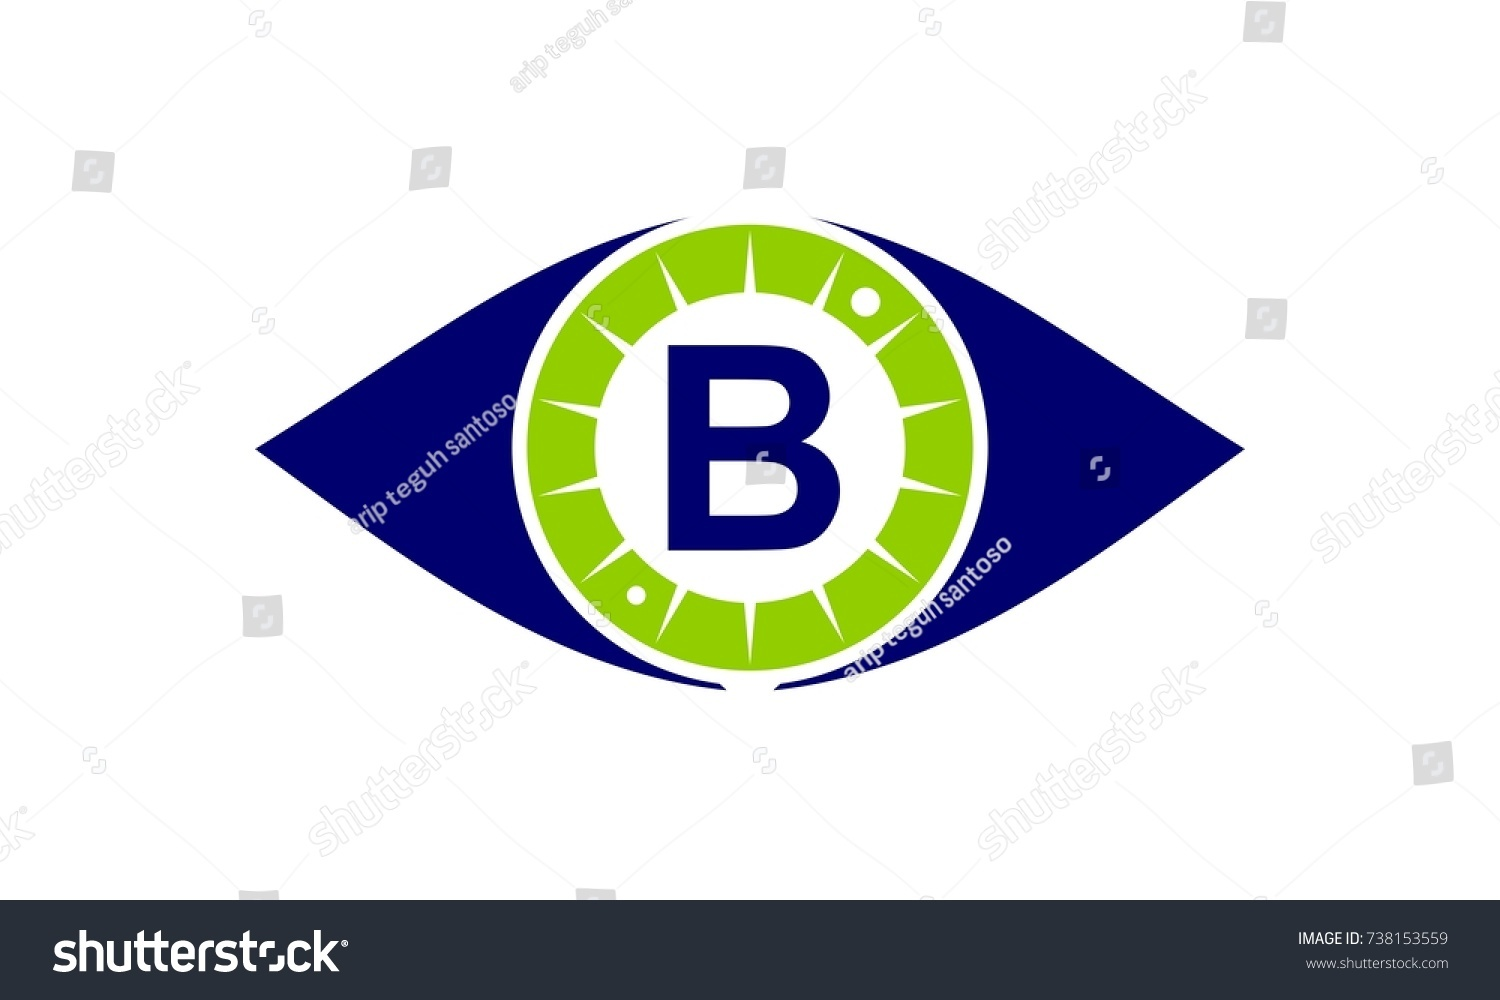 B Stock Solutions eye care solutions letter b stock vector (royalty free